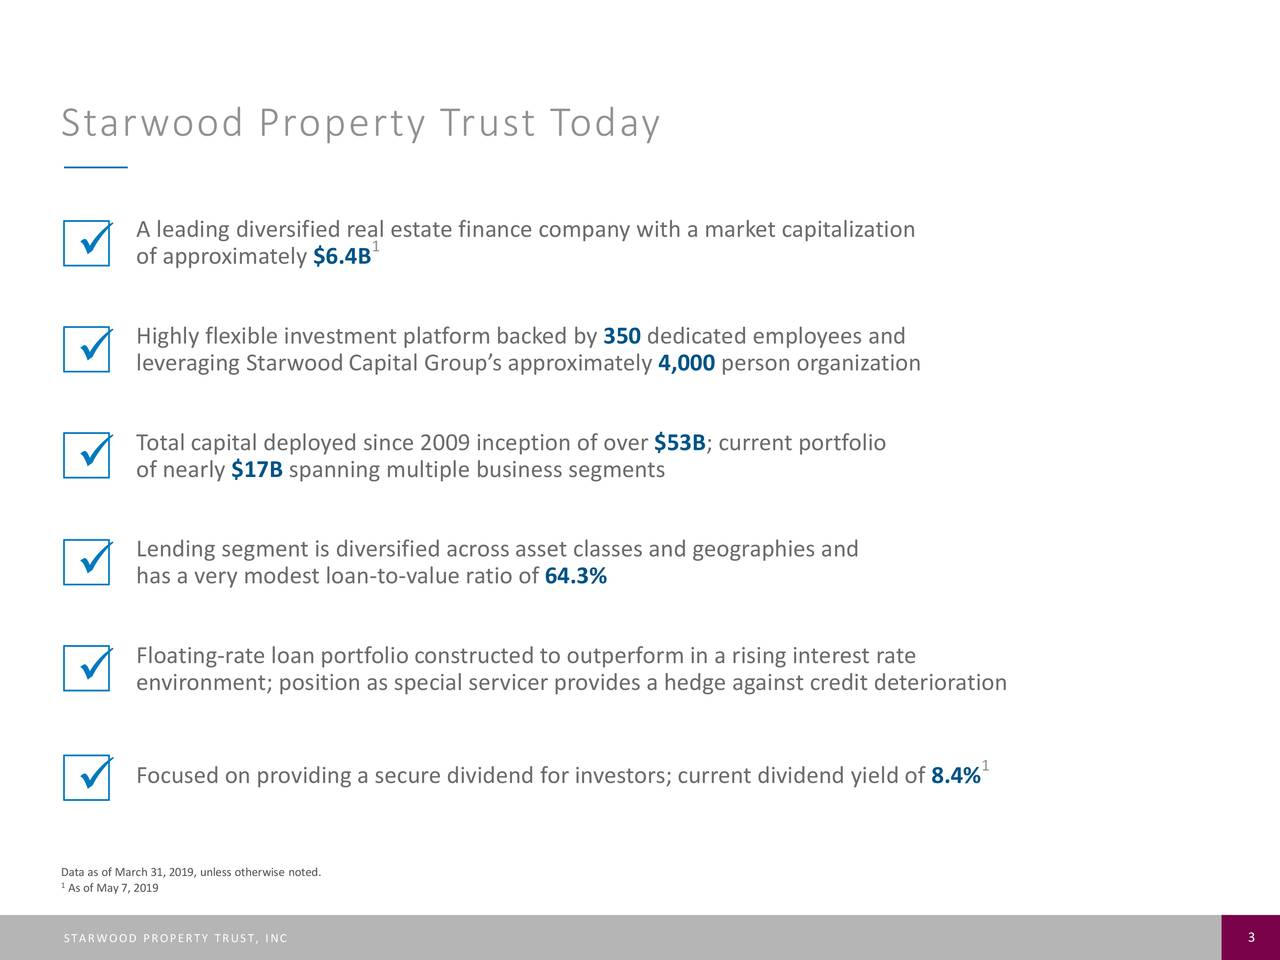 Starwood Property Trust Today